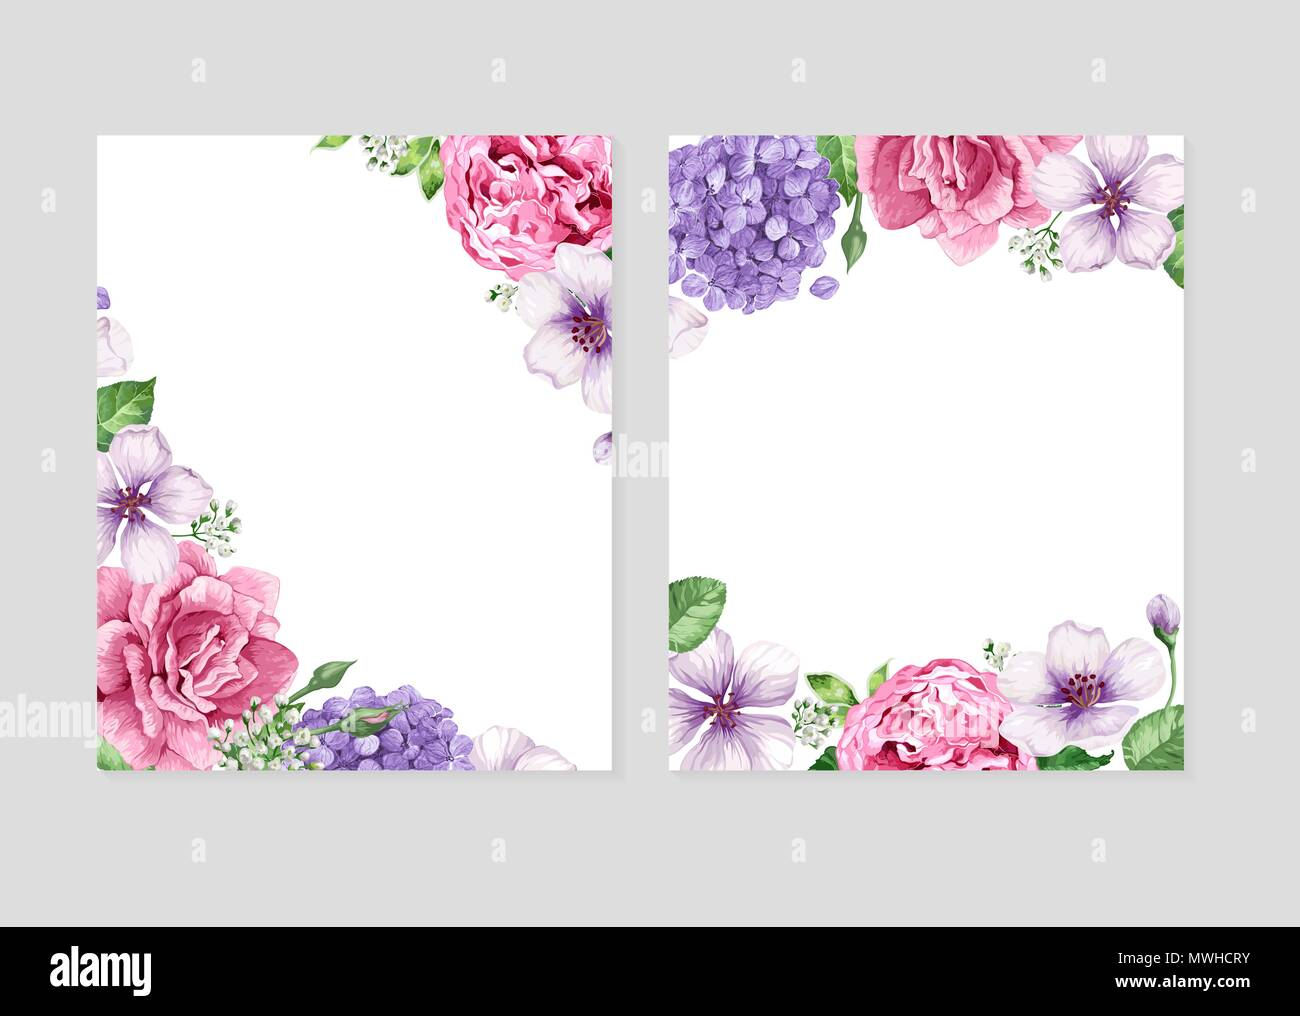 floral blank template set flowers in watercolor style isolated on